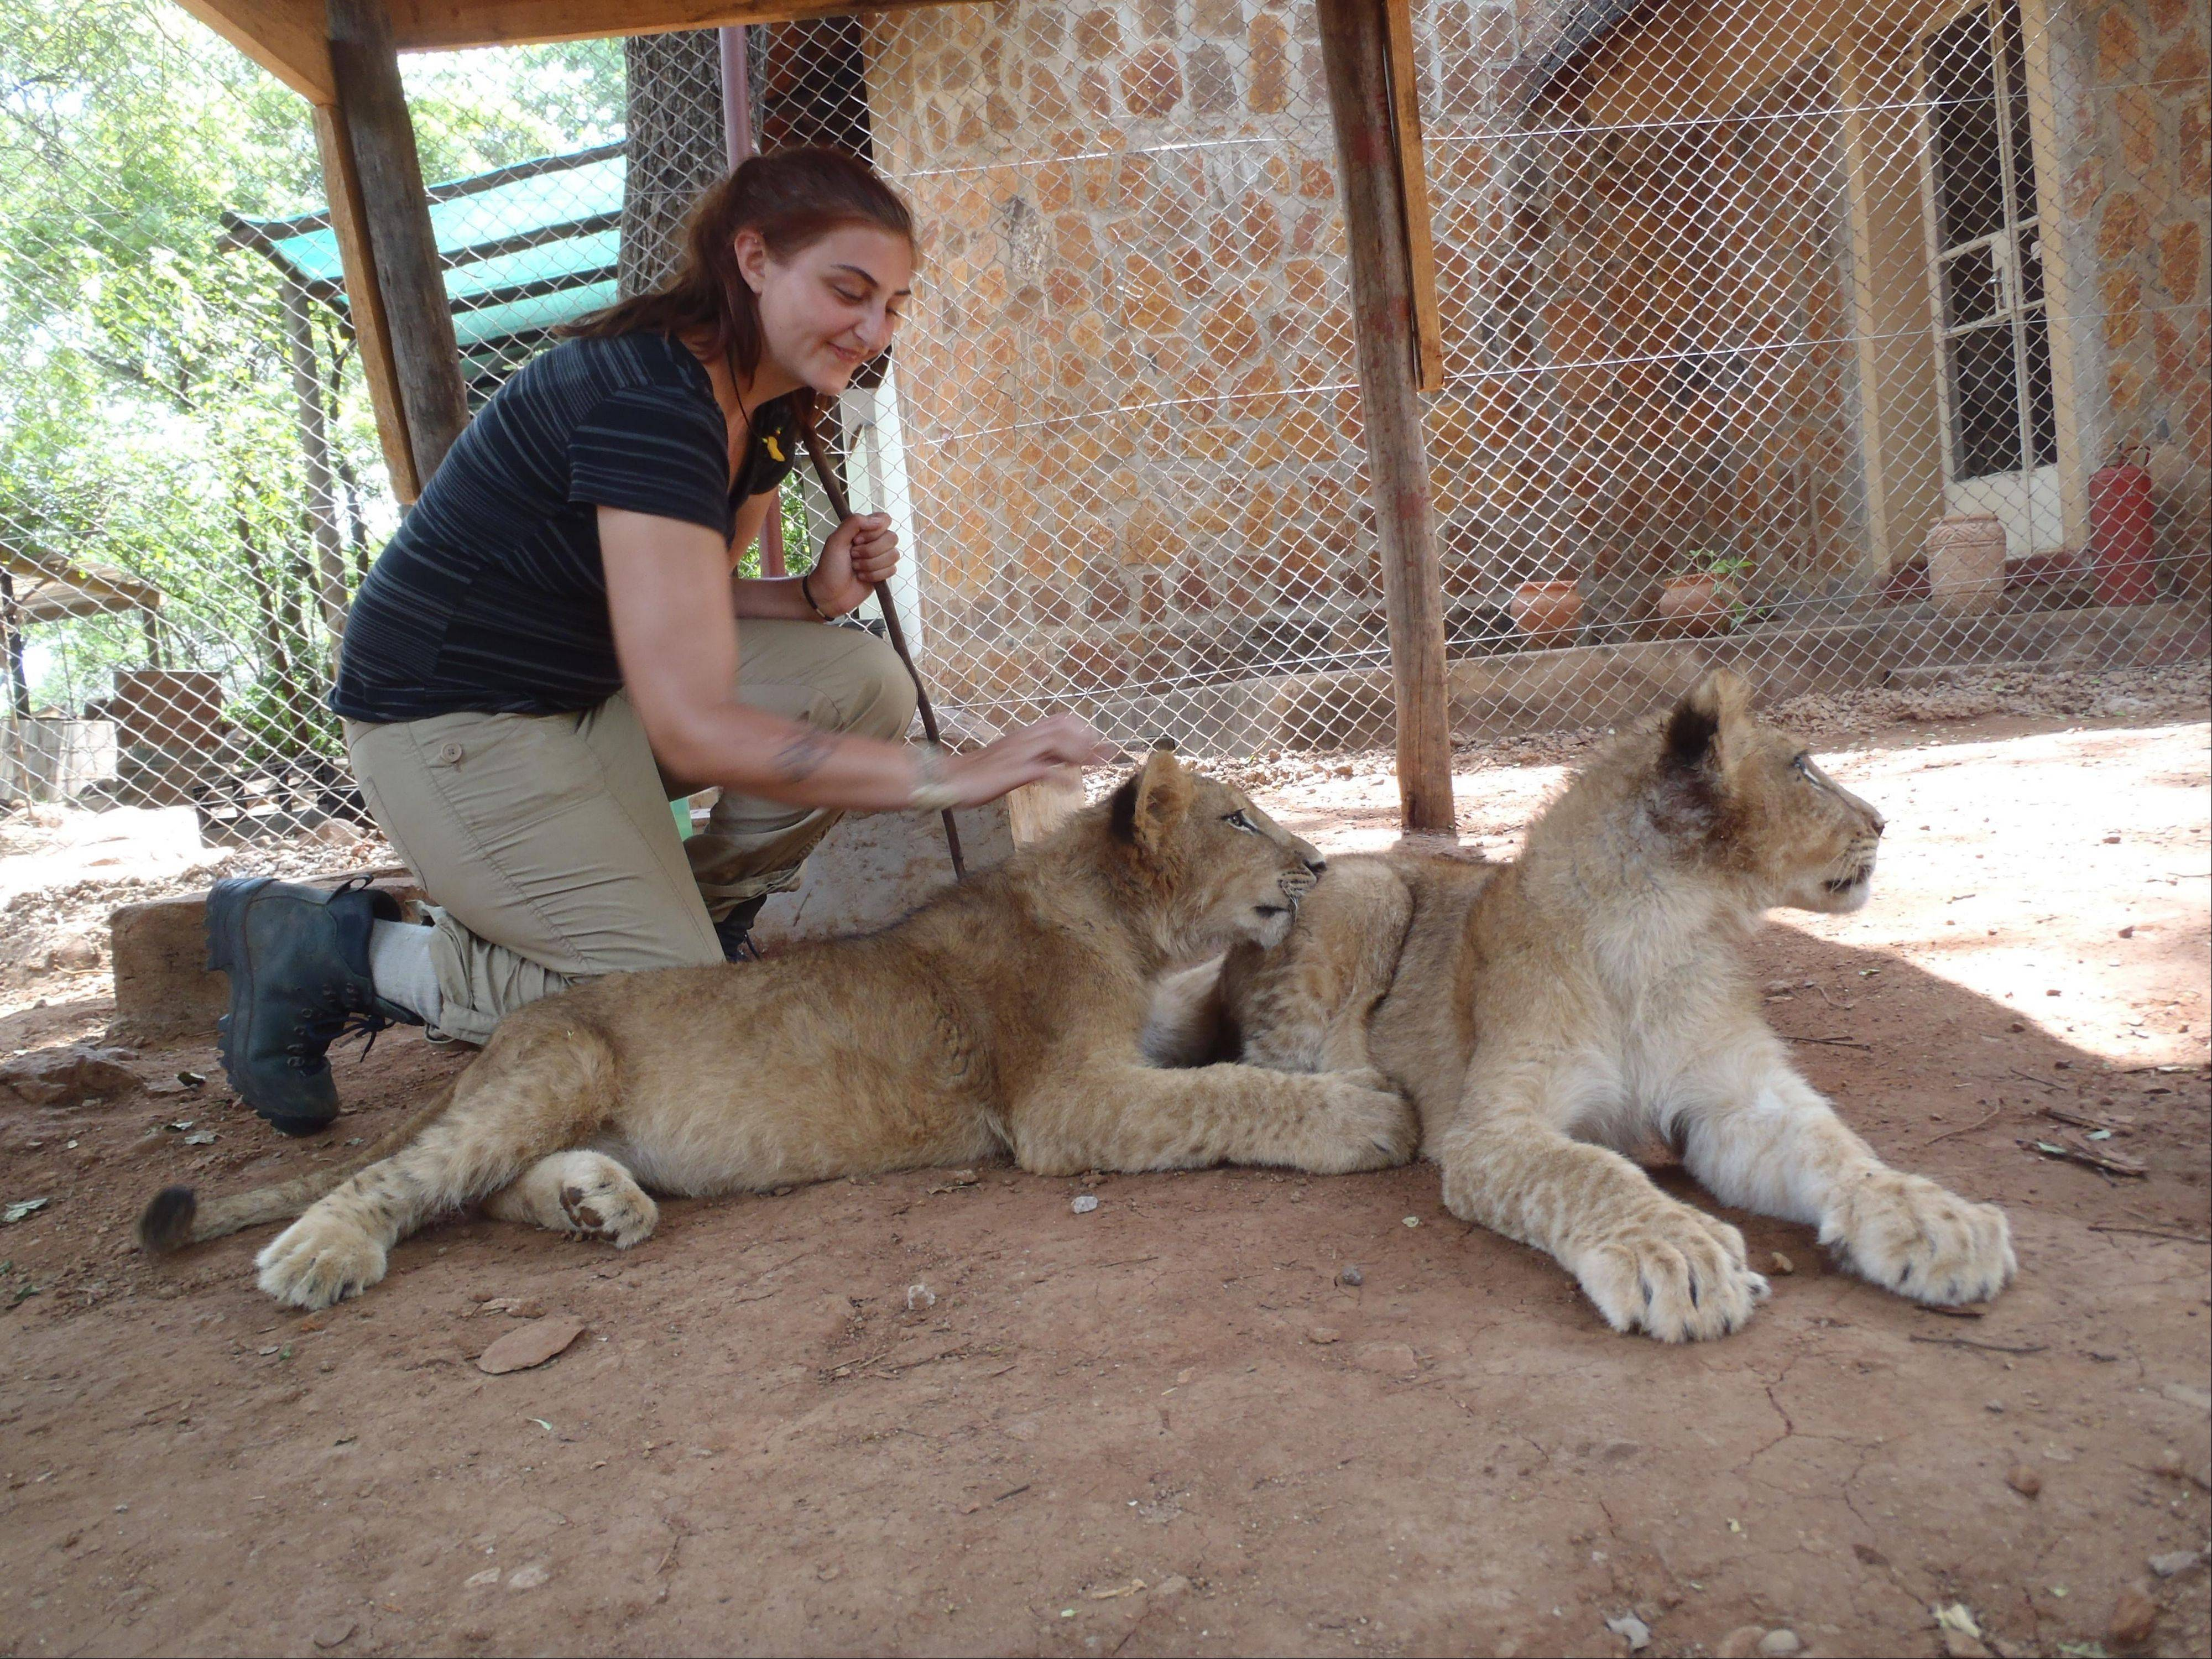 Dana de Grazia helped raise lion cubs as part of her volunteer work with ALERT, the African Lion and Environmental Research Trust in Zambia.